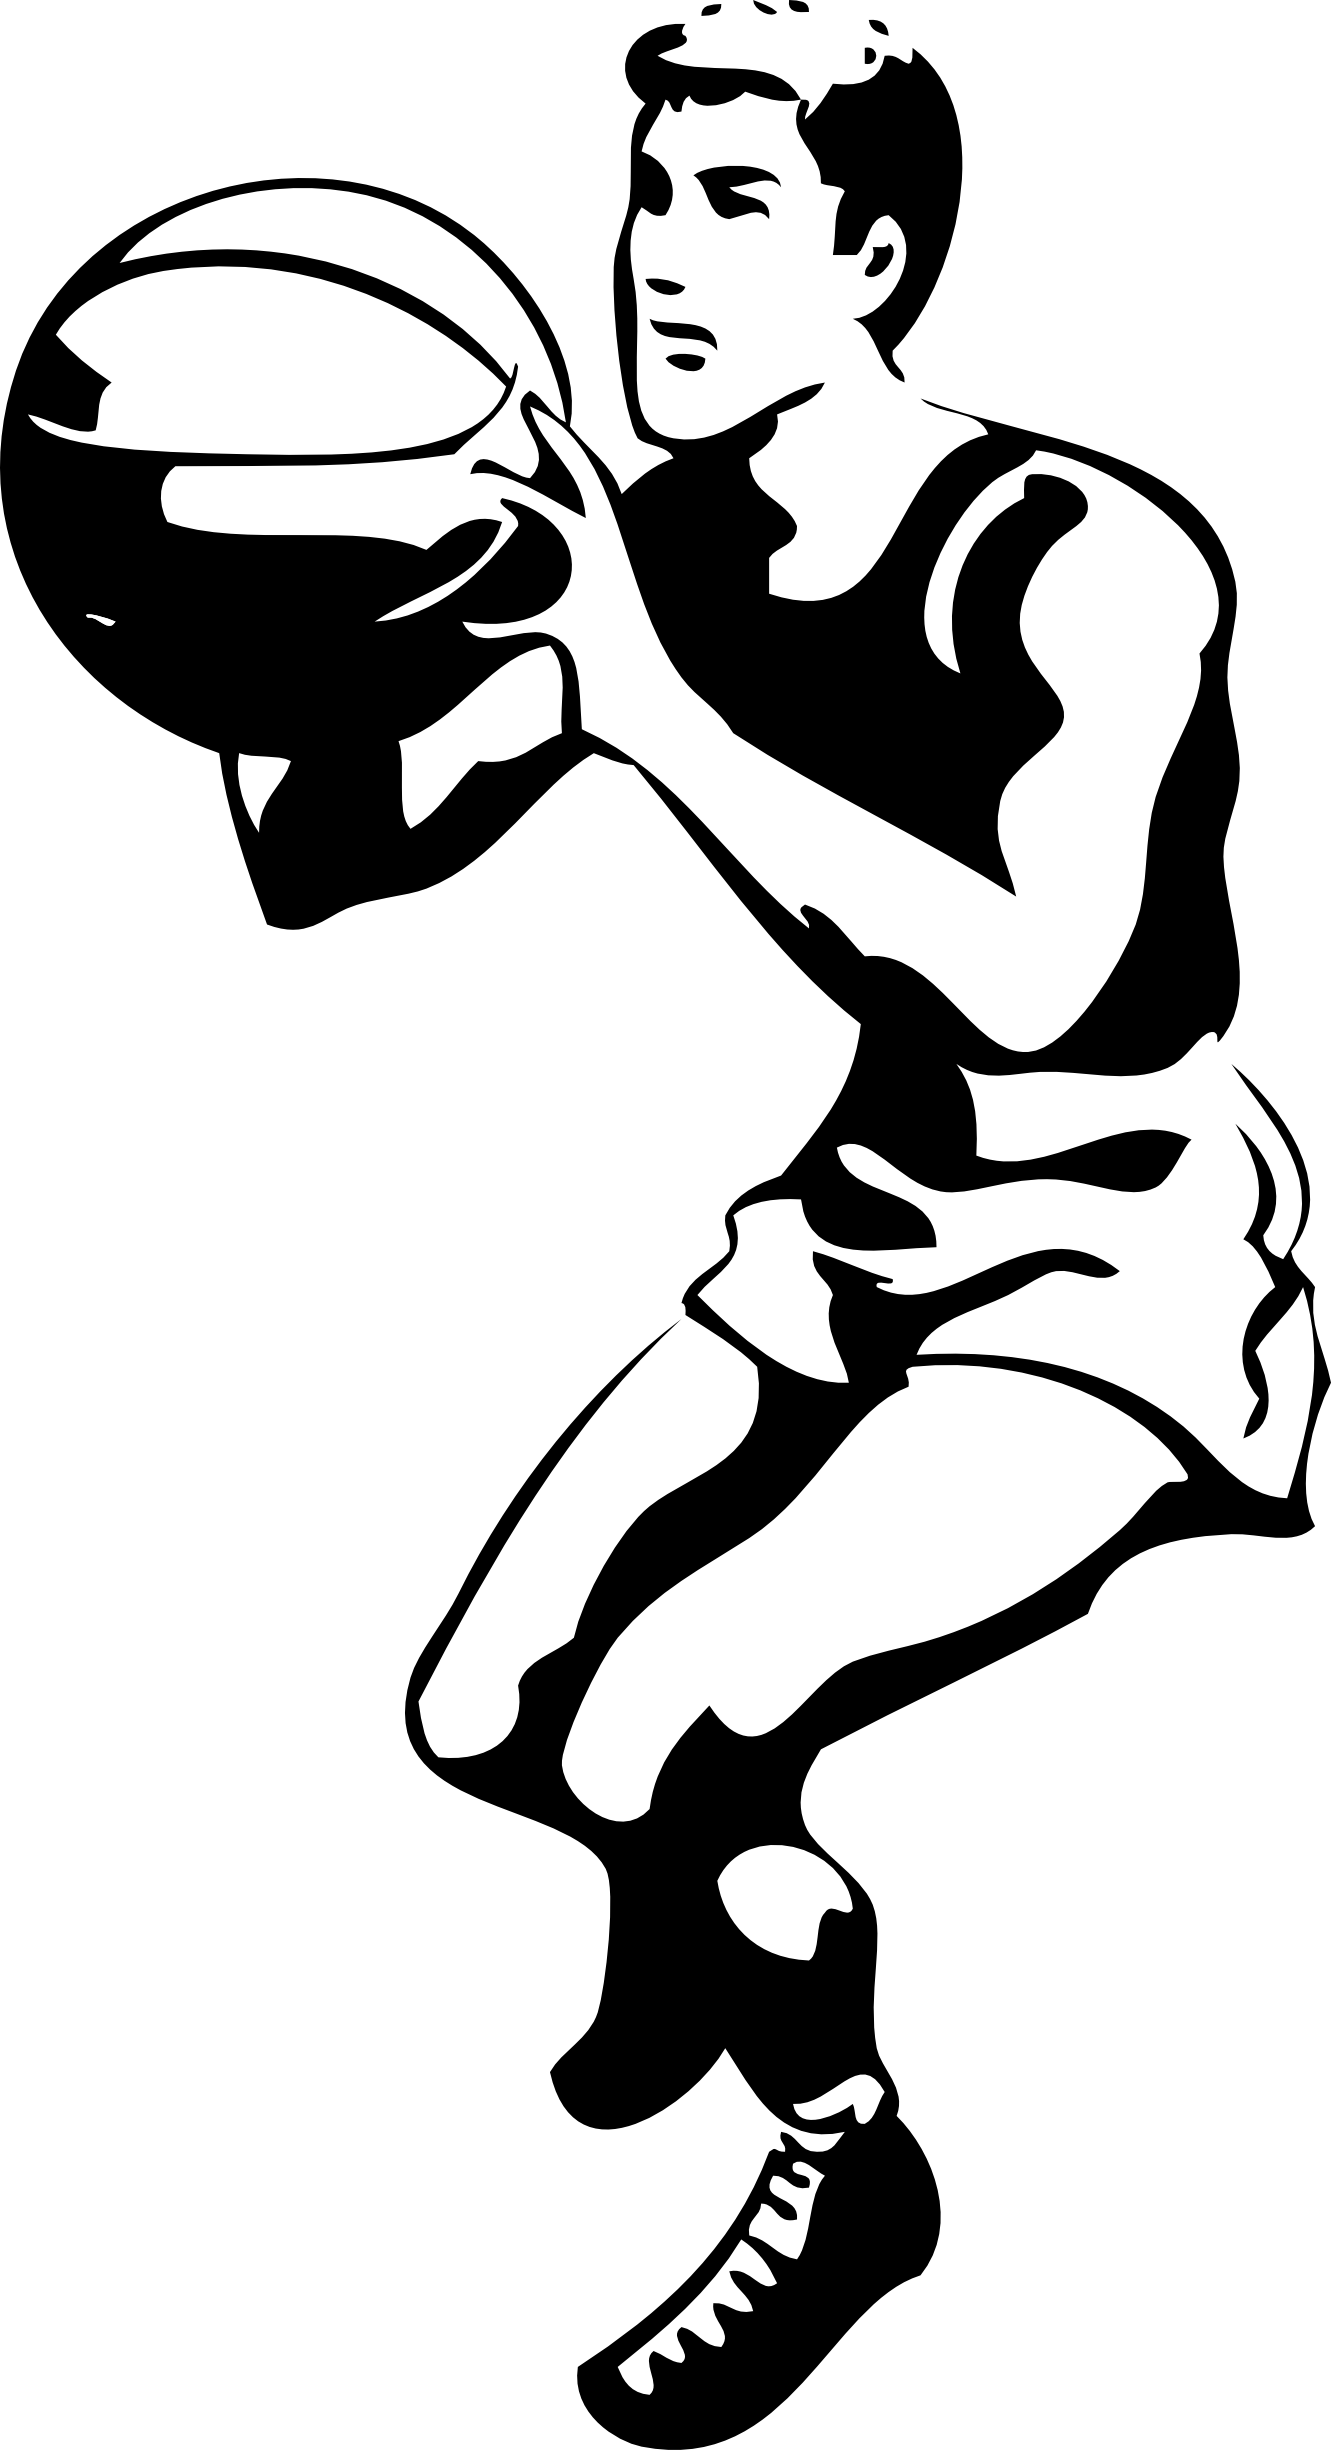 Female football player clipart. Basketball black and white